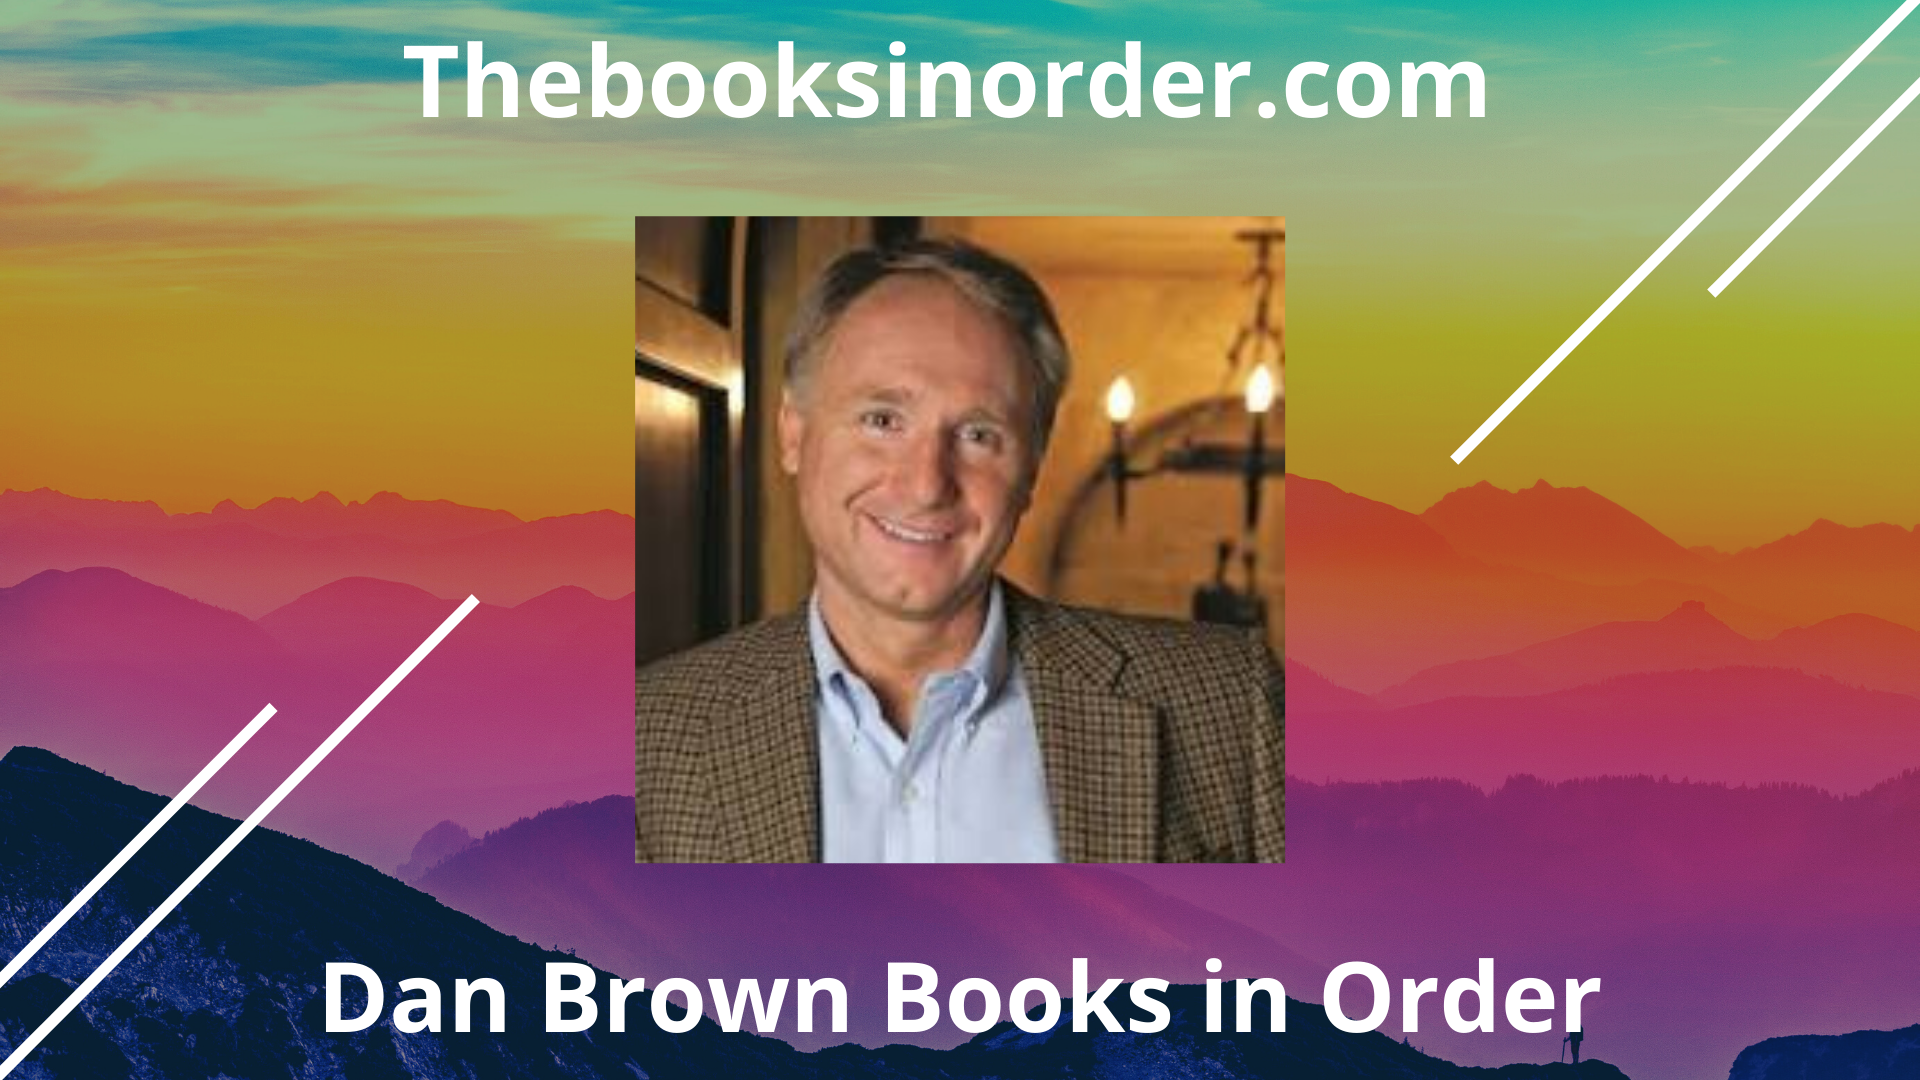 dan brown books, dan brown books in order, dan brown novels, dan brown novels in order